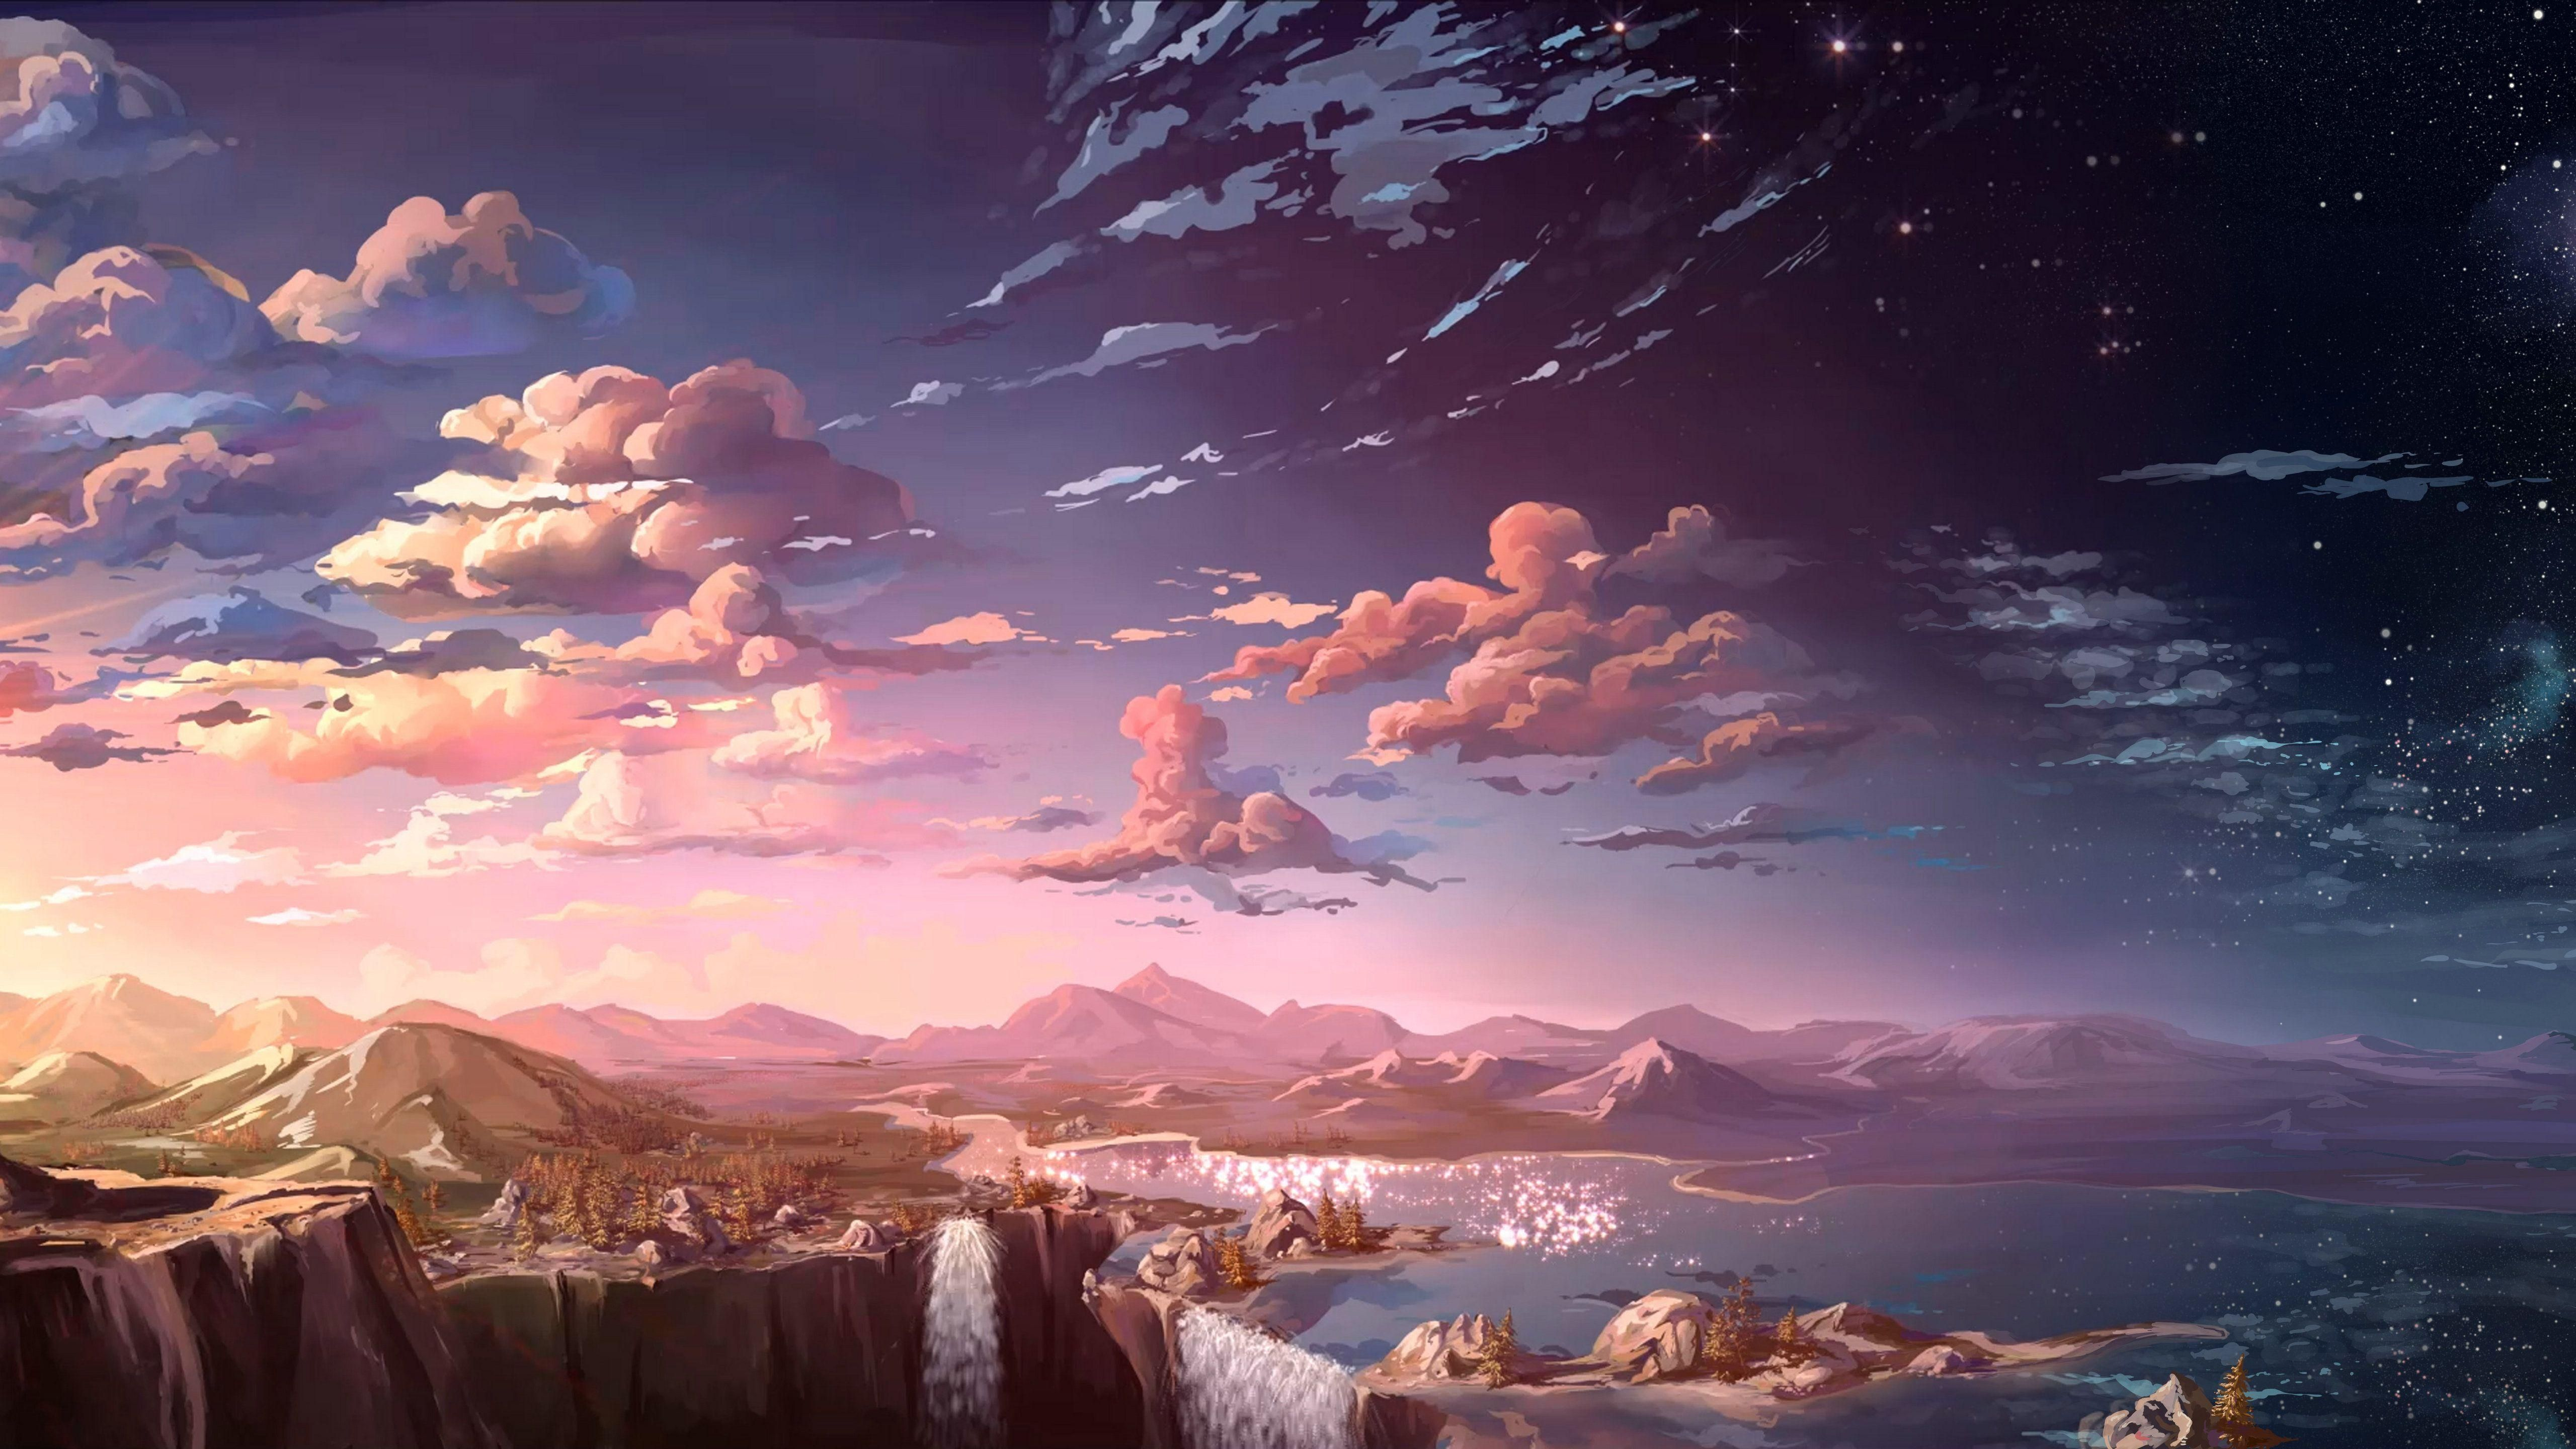 Anime Scenery Road Ps4 Wallpapers Wallpaper Cave